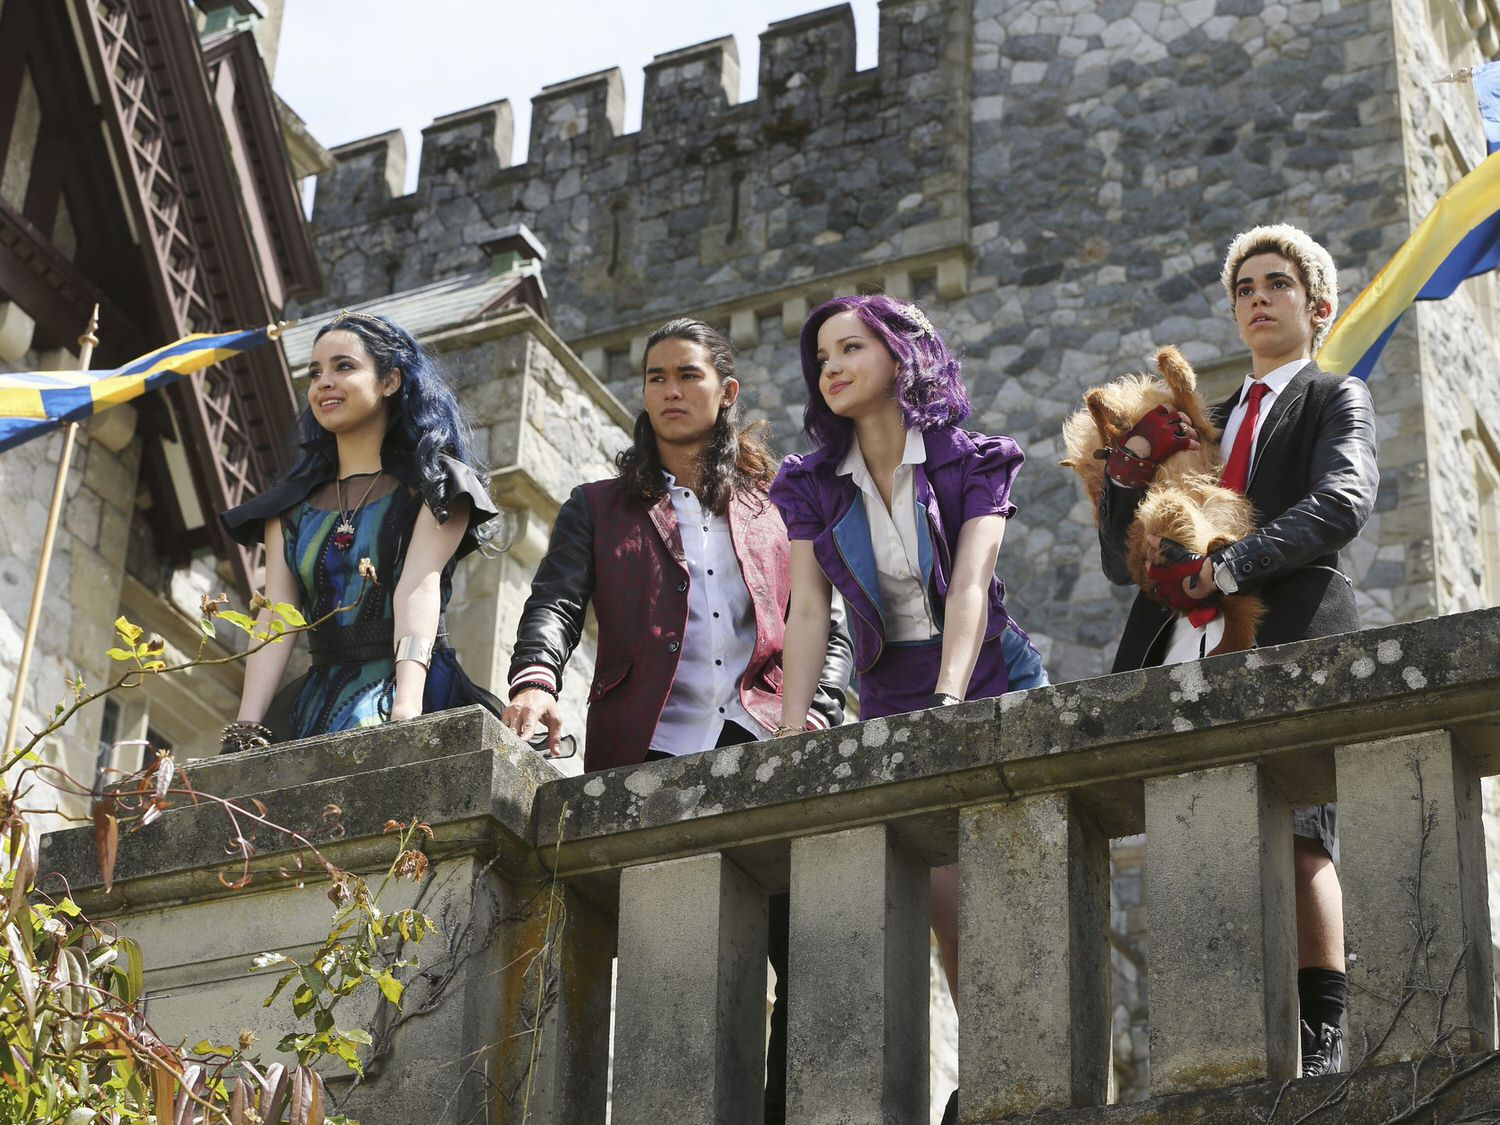 Having been transplanted from their prison on the Isle of the Lost to the gorgeous mainland of Auradon, the Villain Kids struggle to fit in. From left to right: Evie (Sofia Carson), Jay (Booboo Stewart), Mal (Dove Cameron) and Carlos (Cameron Boyce).  (Disney Publicity photo)